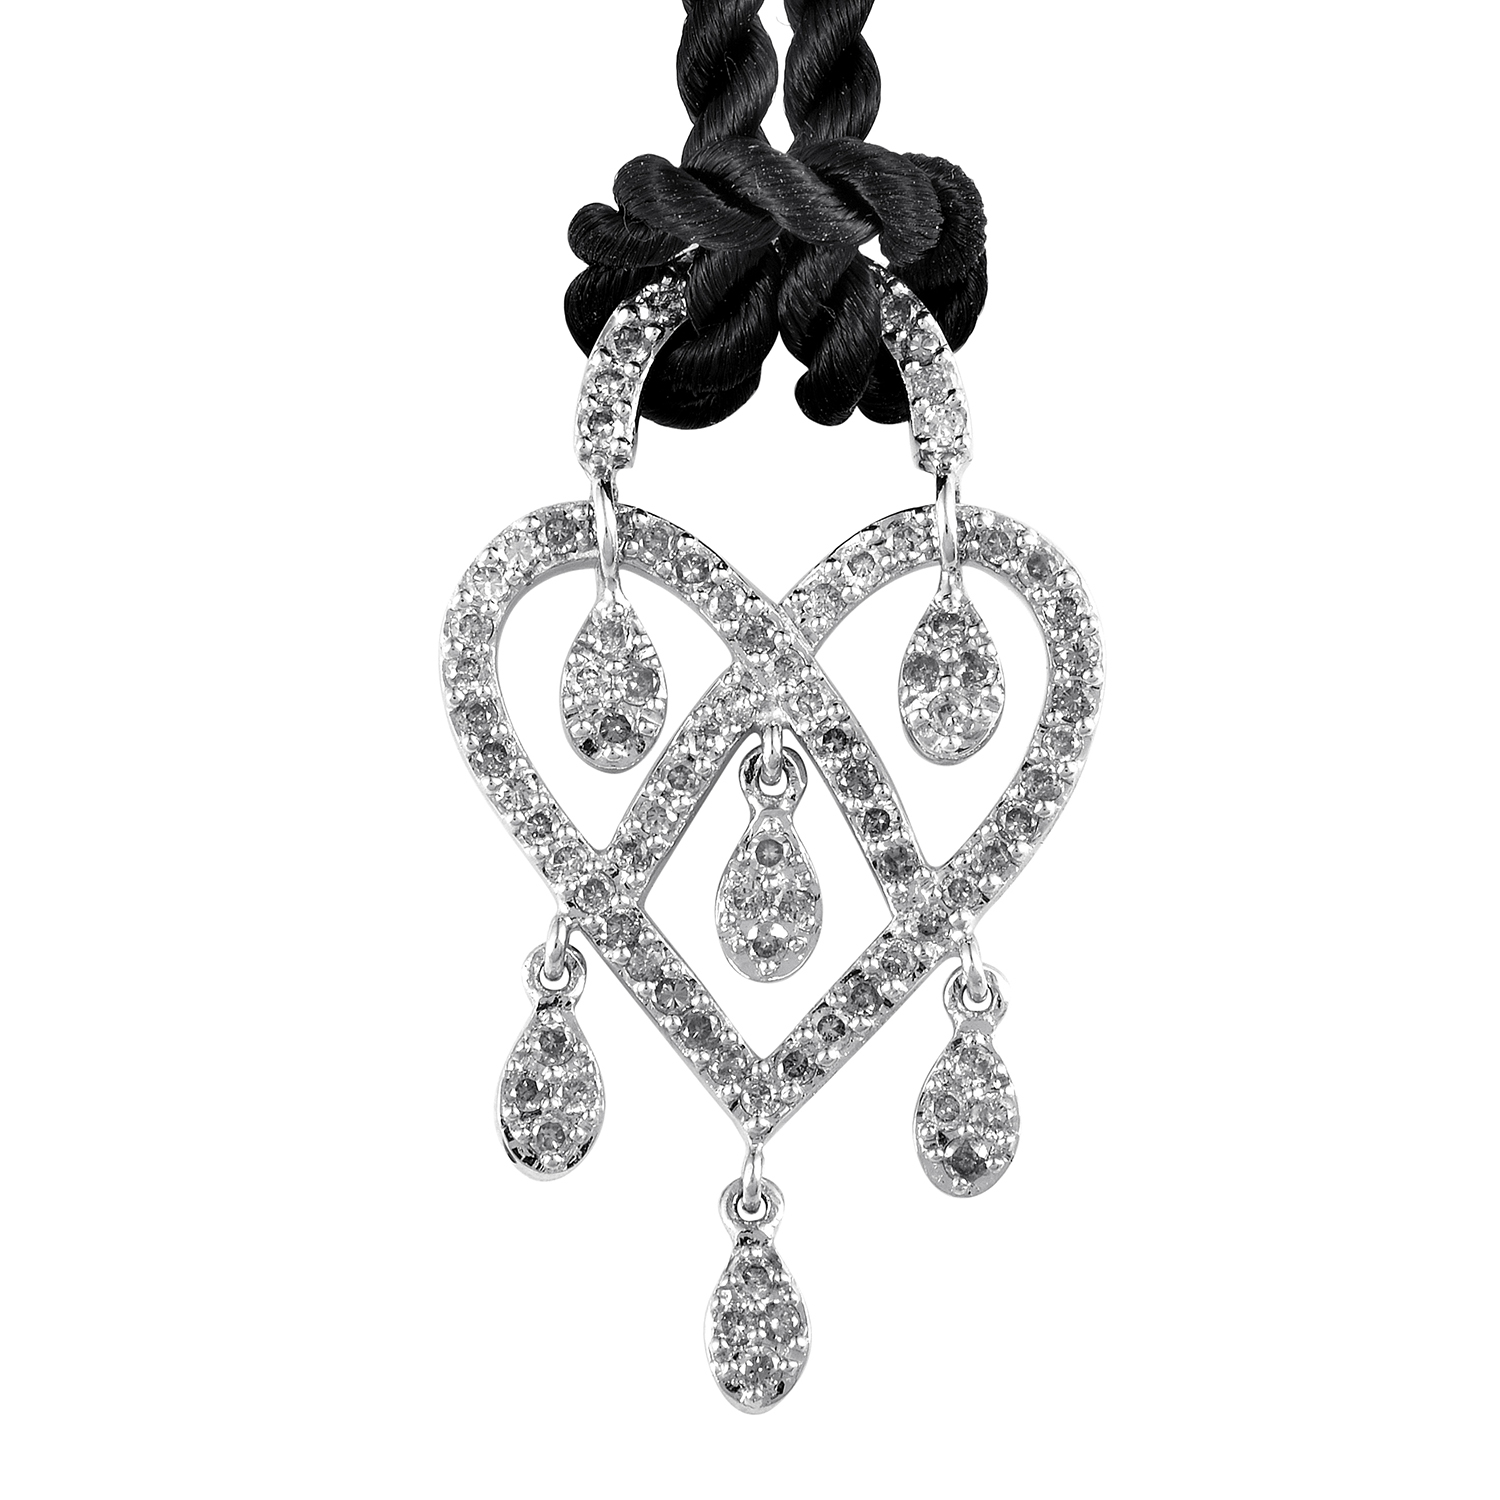 In Love Heart 18K White Gold Diamond Pendant & Cord Necklace PPC9135BLK